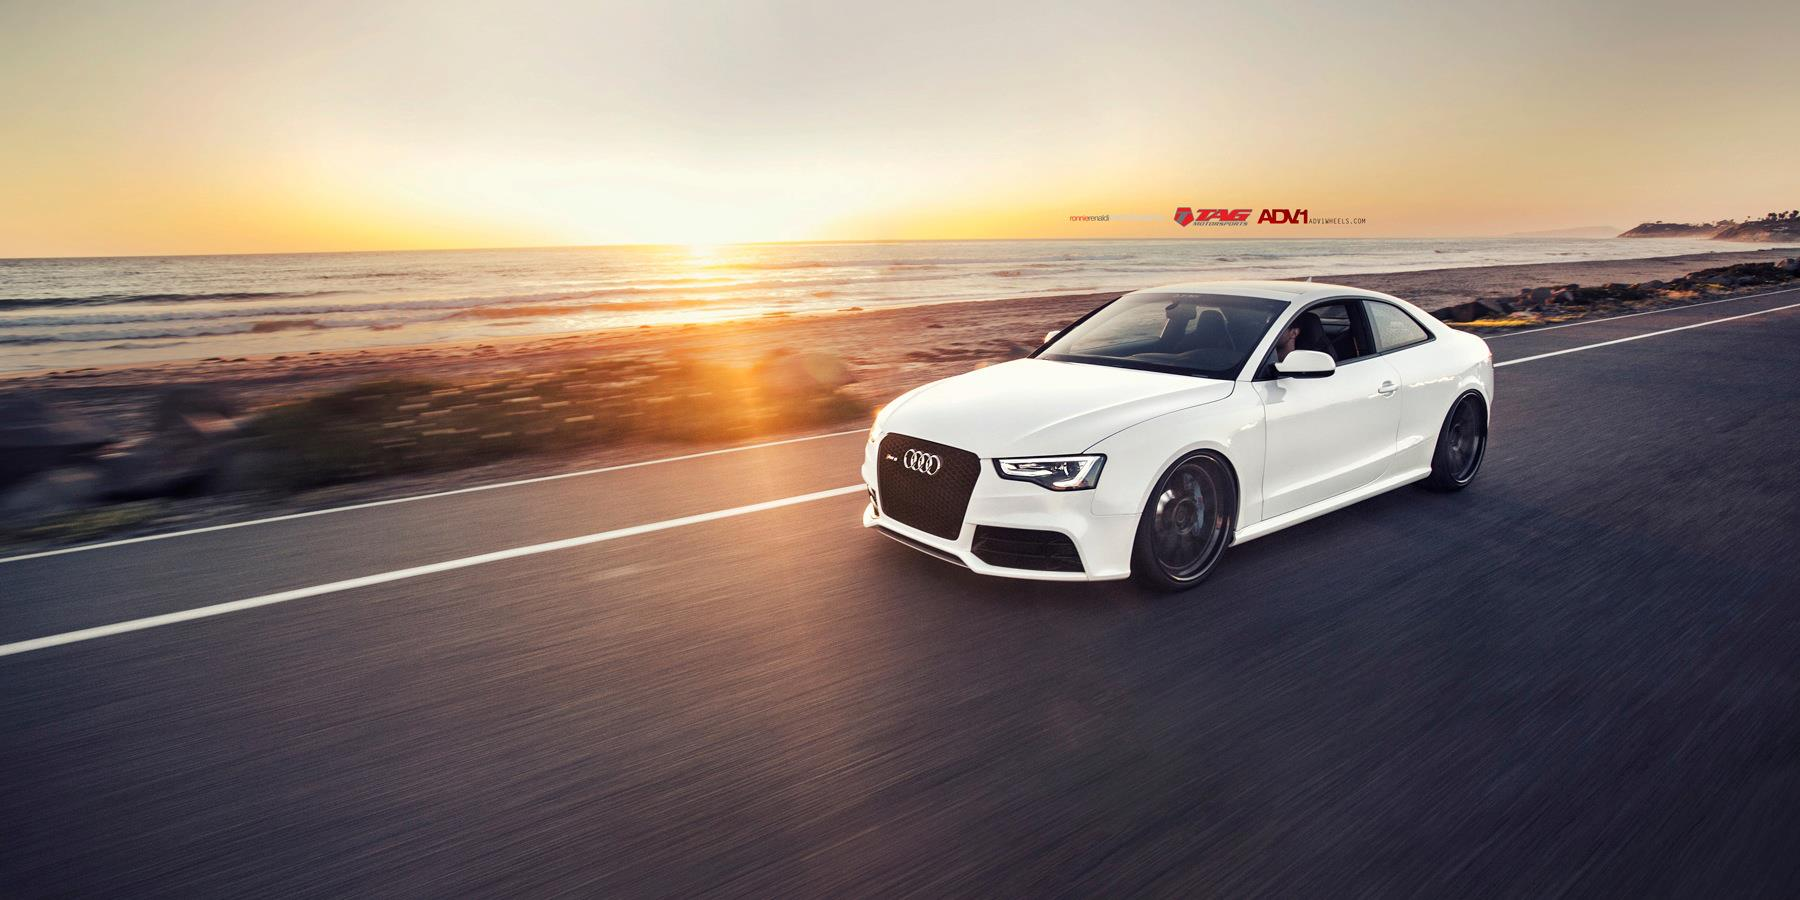 Smart Key Audi Rs >> 2013 Audi RS5 Sharpened Up by TAG Motorsports - autoevolution